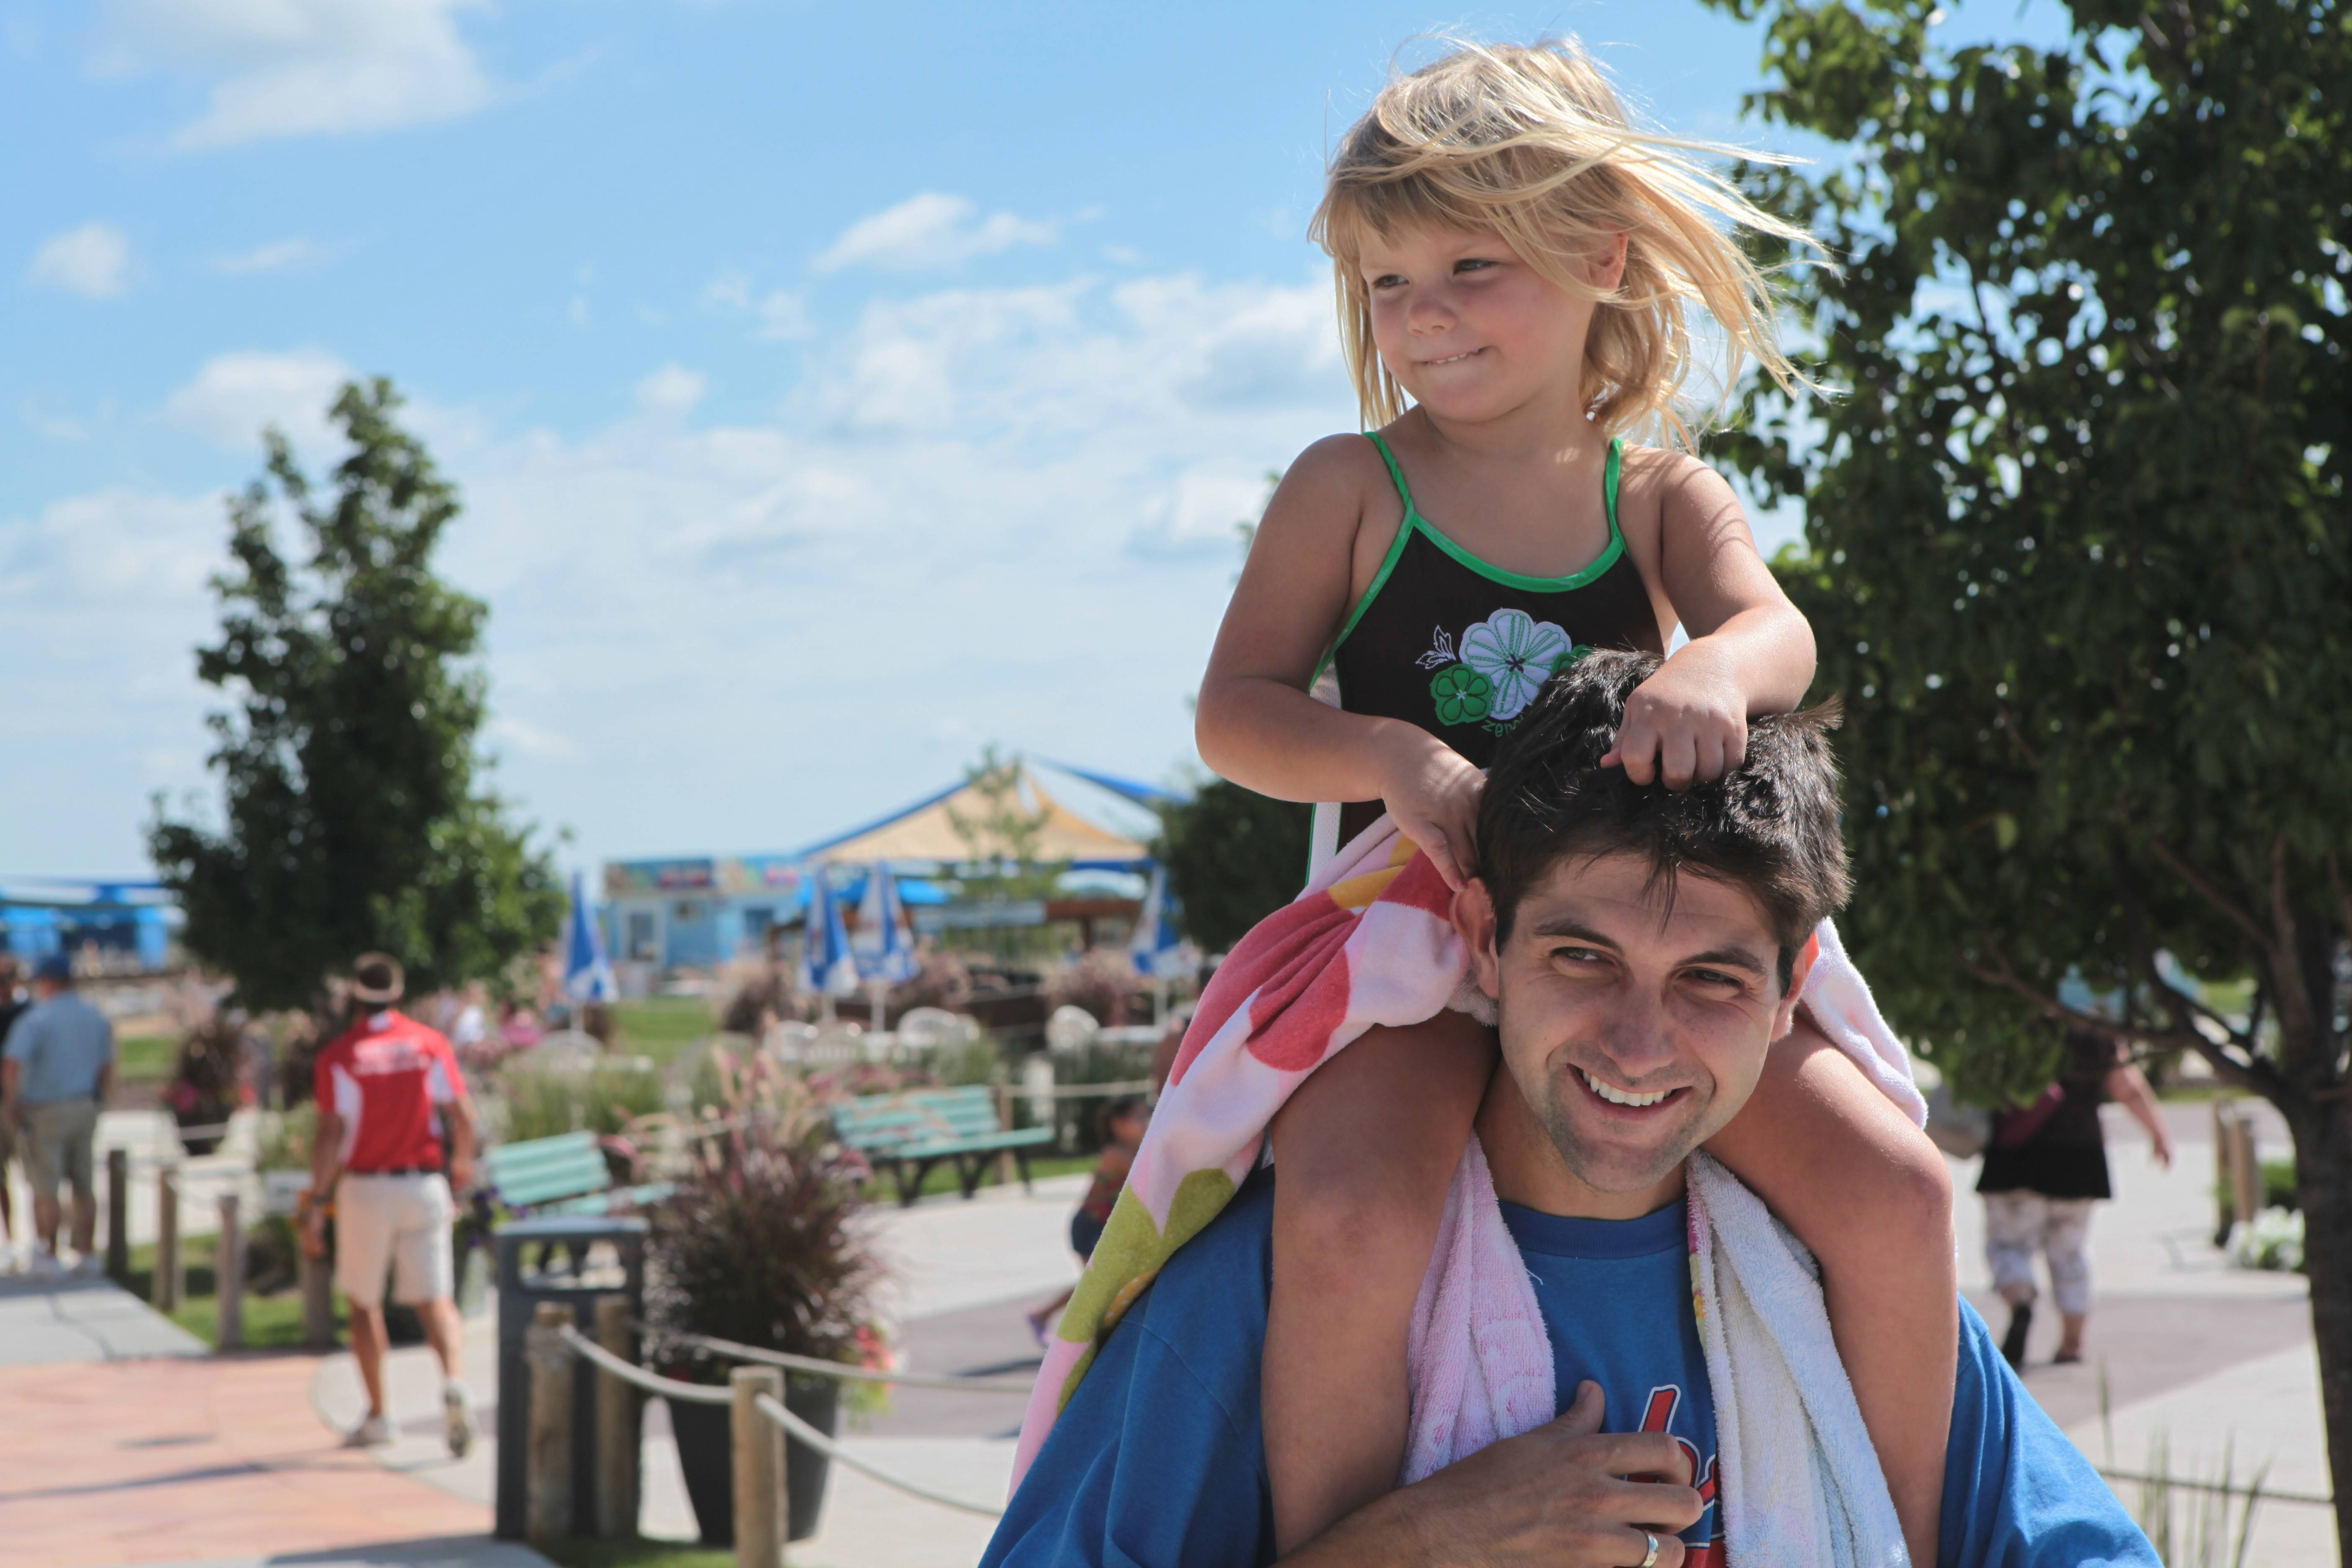 Raging Waves water park in Yorkville offers splish-splashing fun in the sun for the whole family.